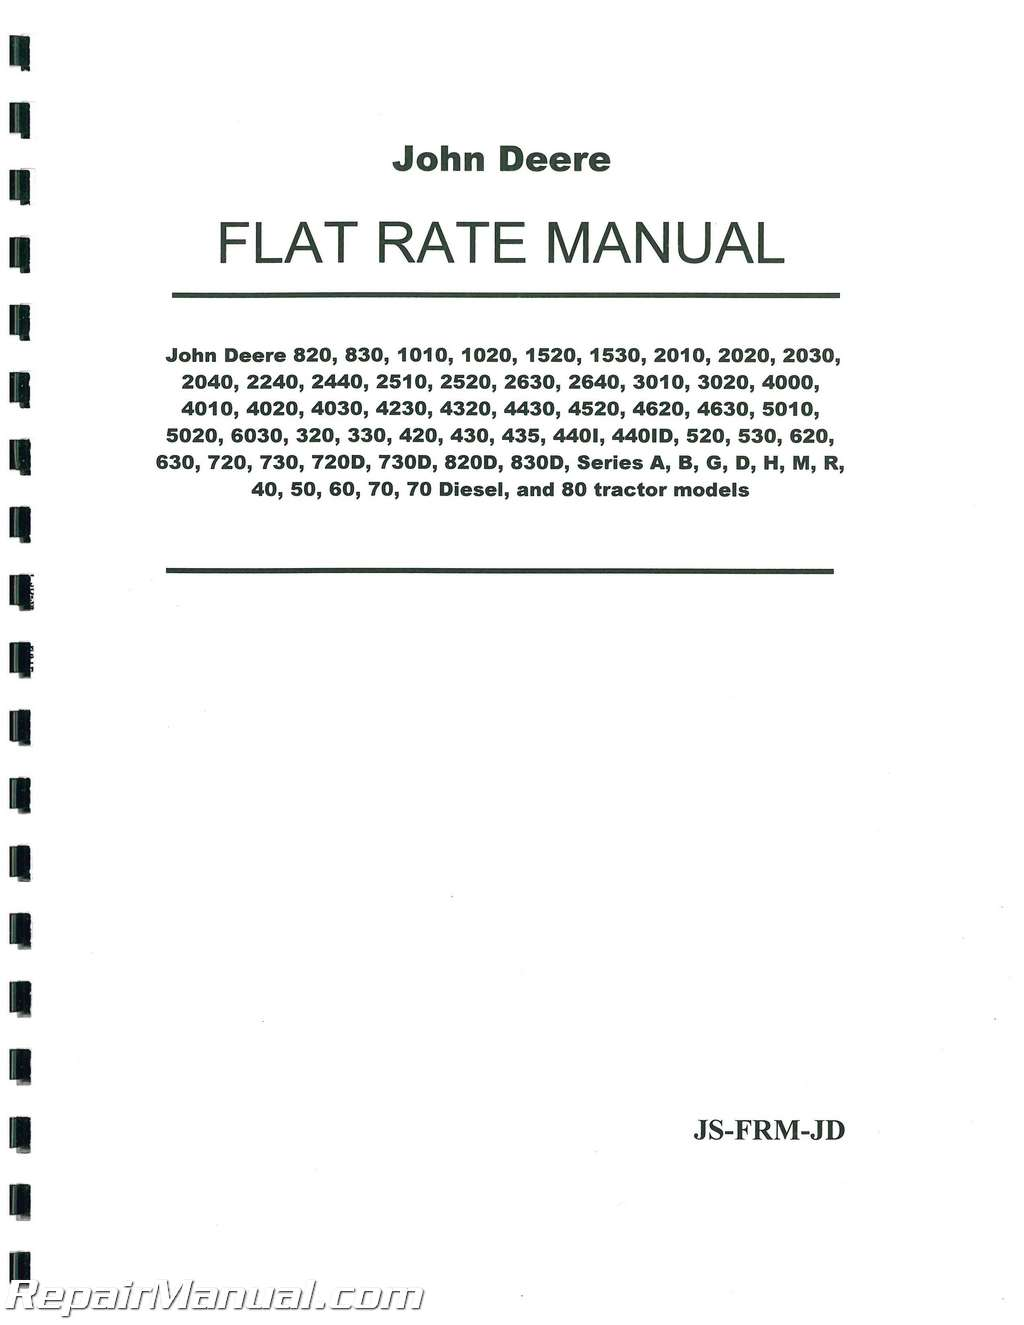 John Deere Tractor Flat Rate Manual